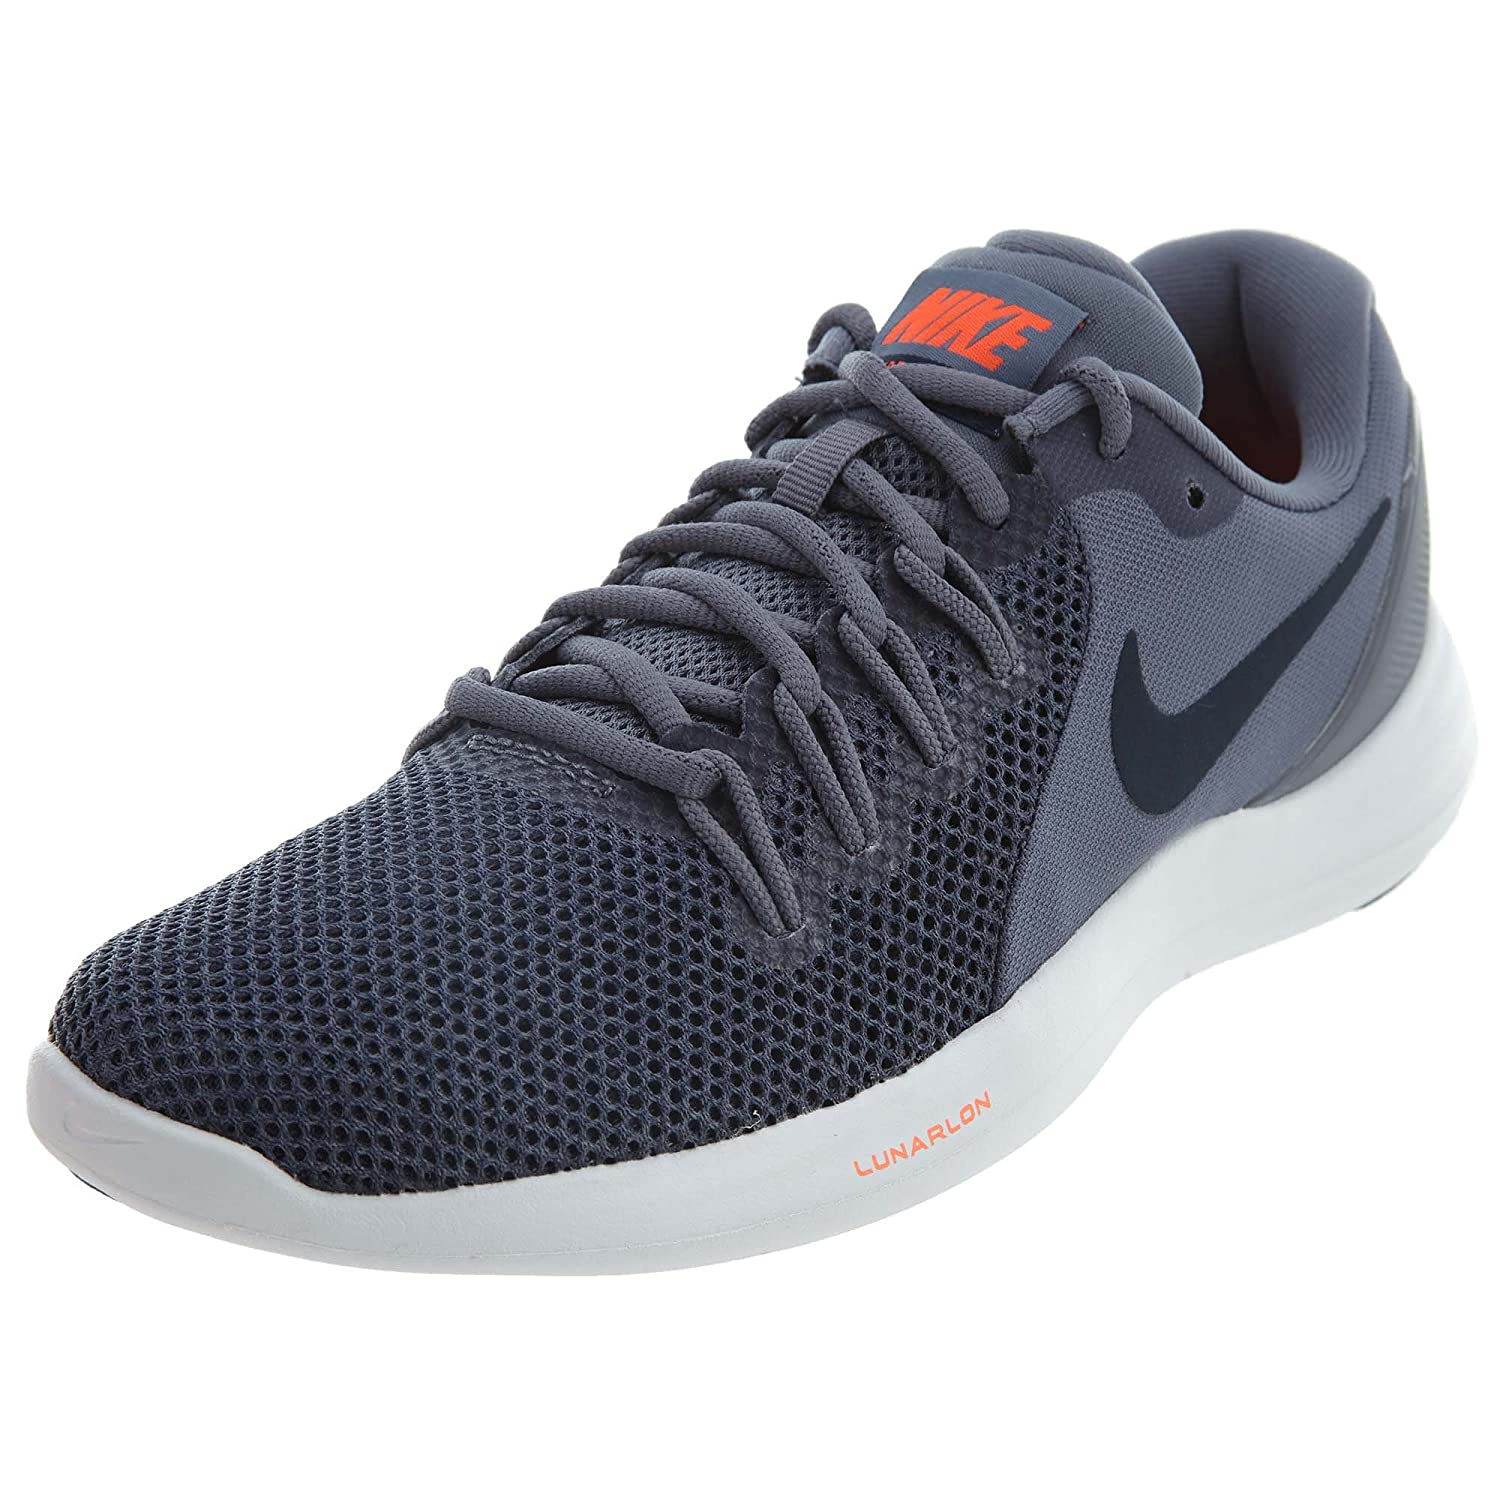 new products 485a2 42c93 Nike Lunar Apparent Mens Running Shoes